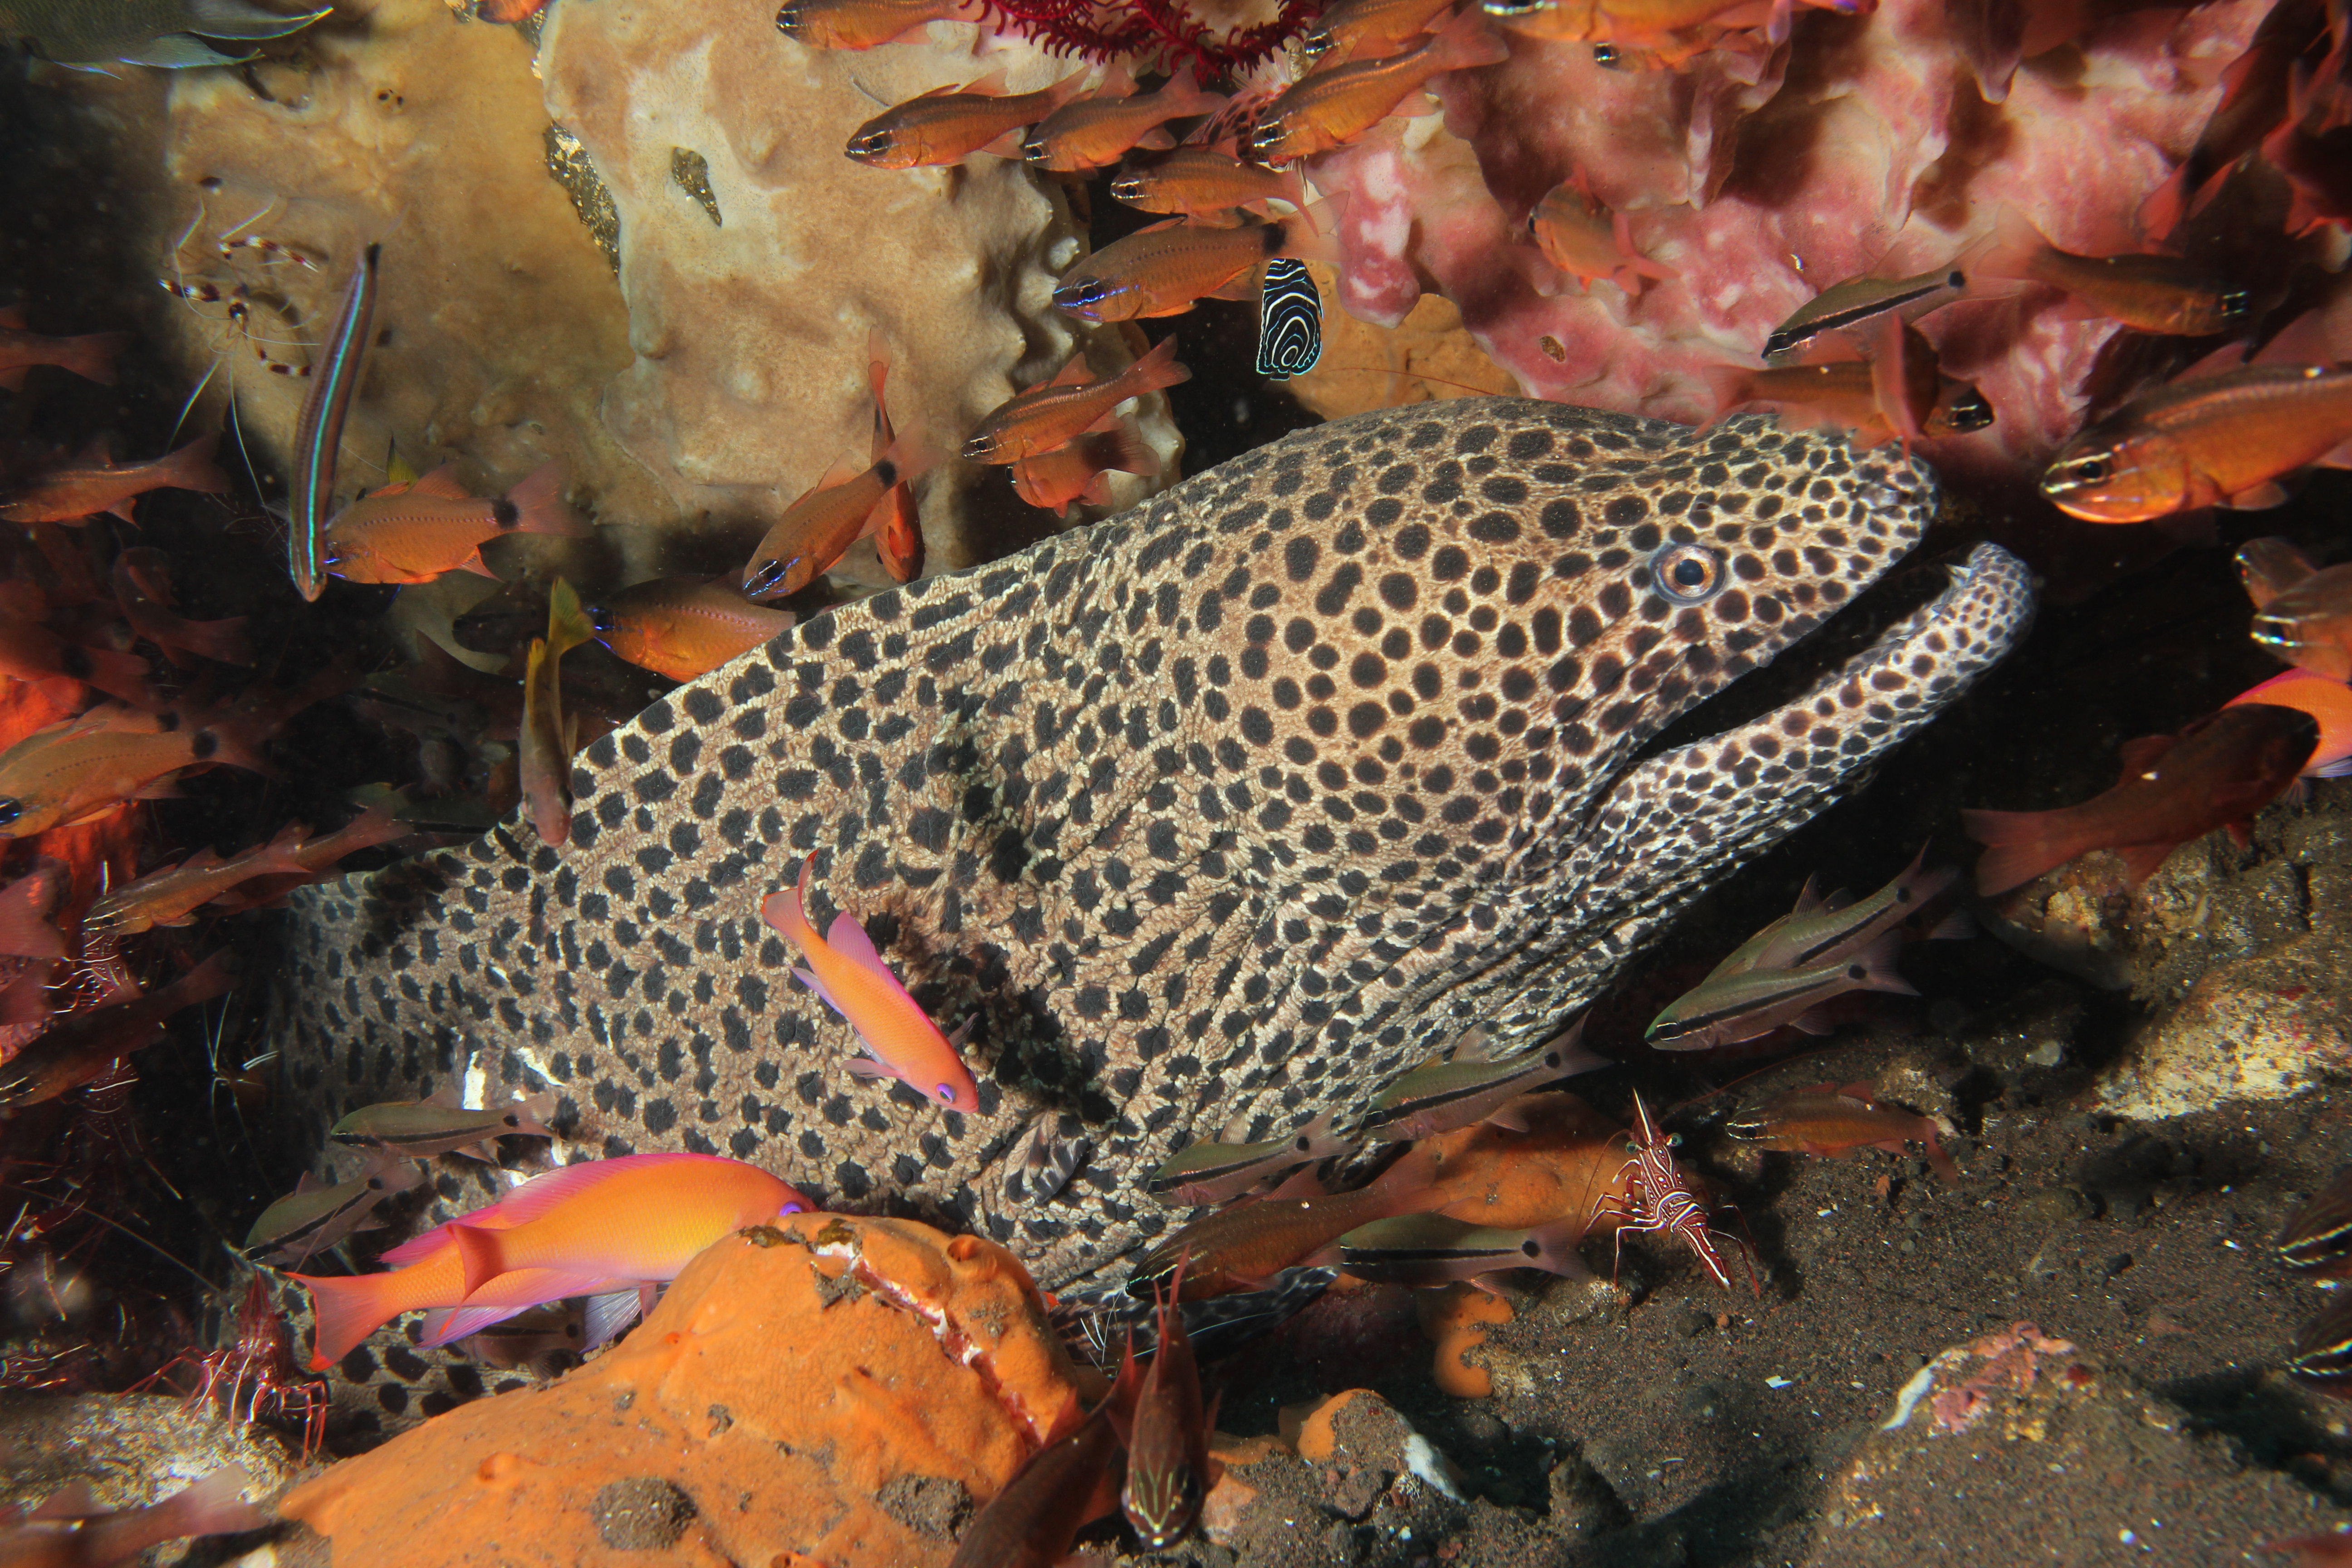 Blackspotted Moray